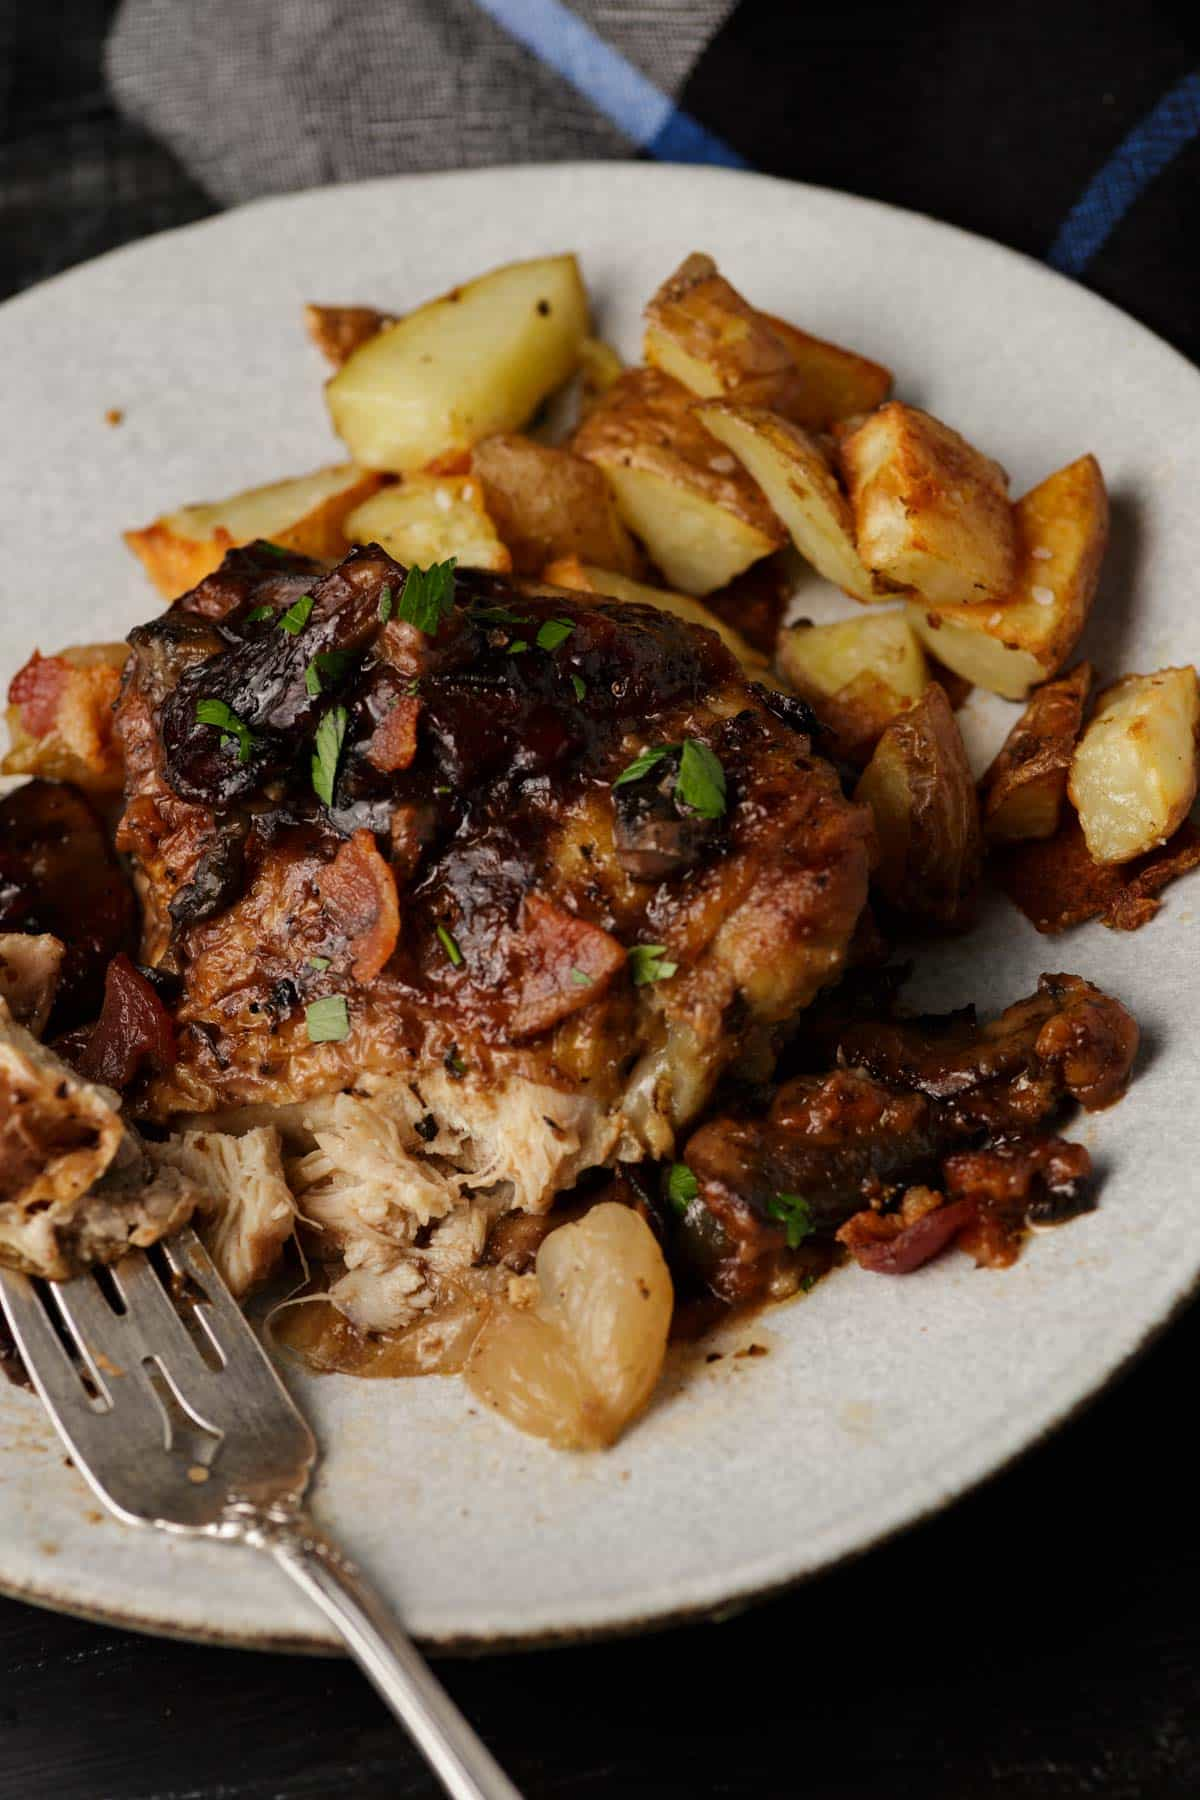 A fork full of coq au vin with roasted potatoes